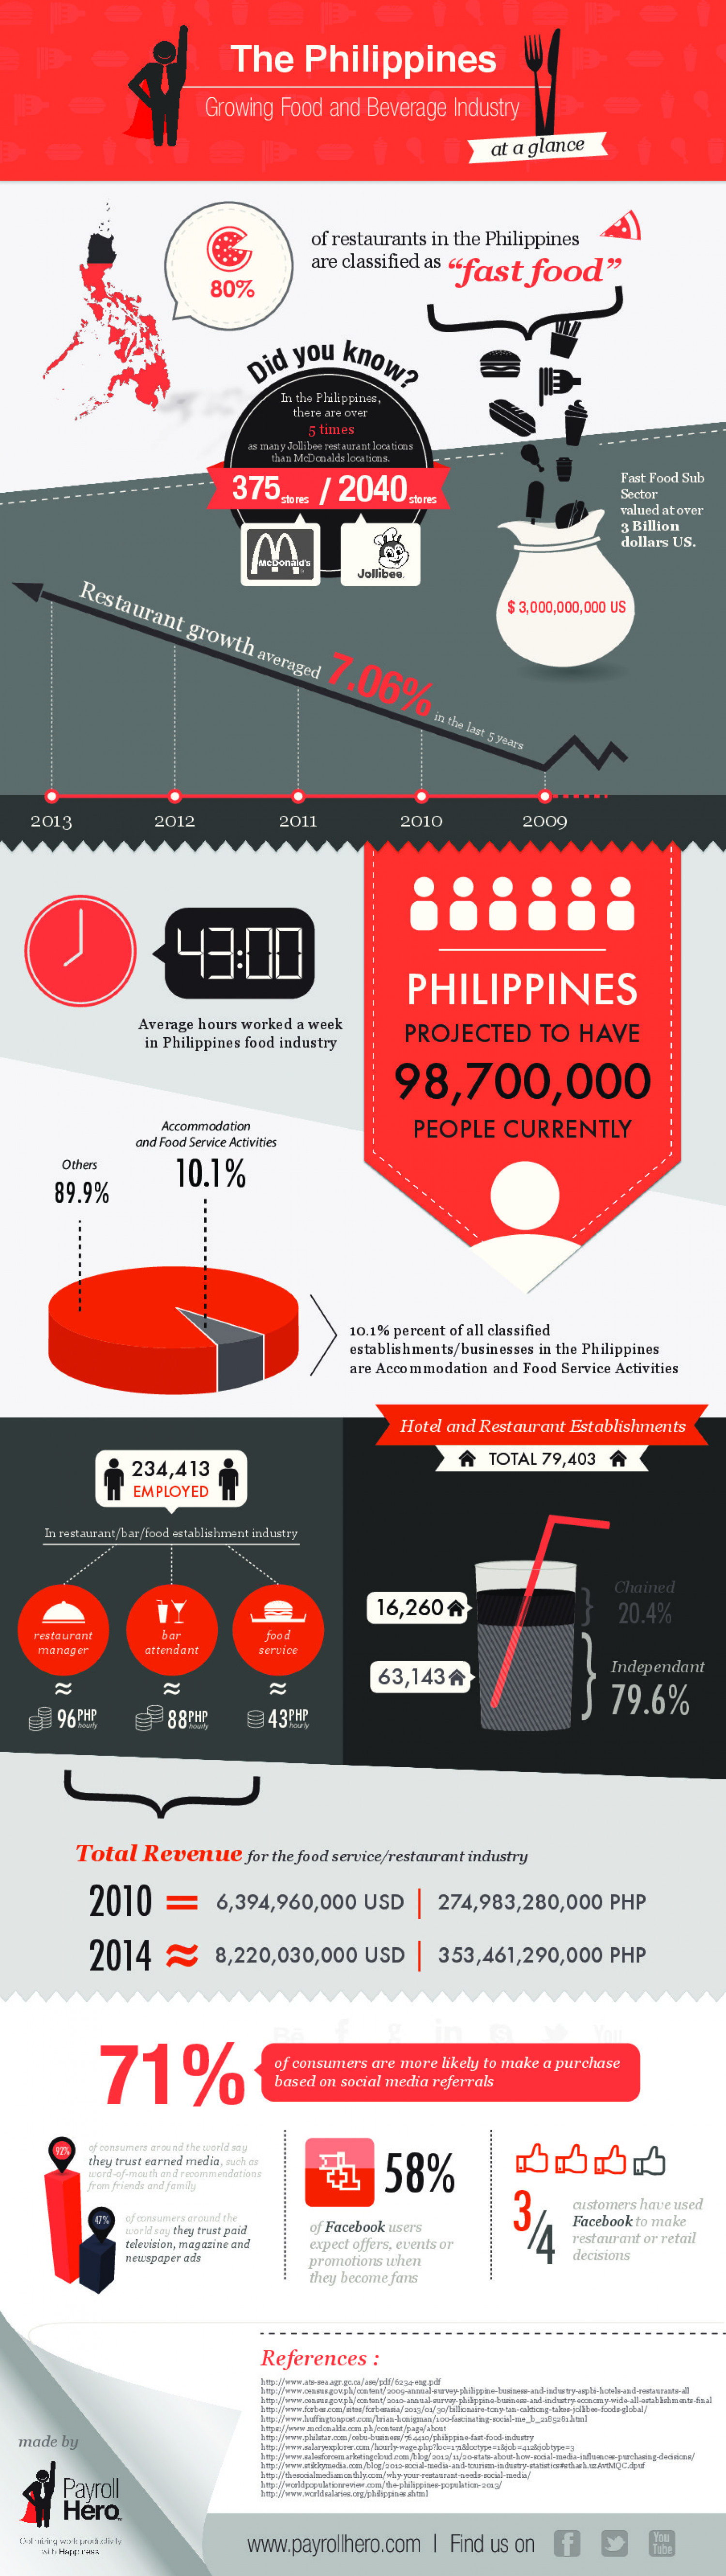 The Philippines Restaurant Industry at a Glance Infographic